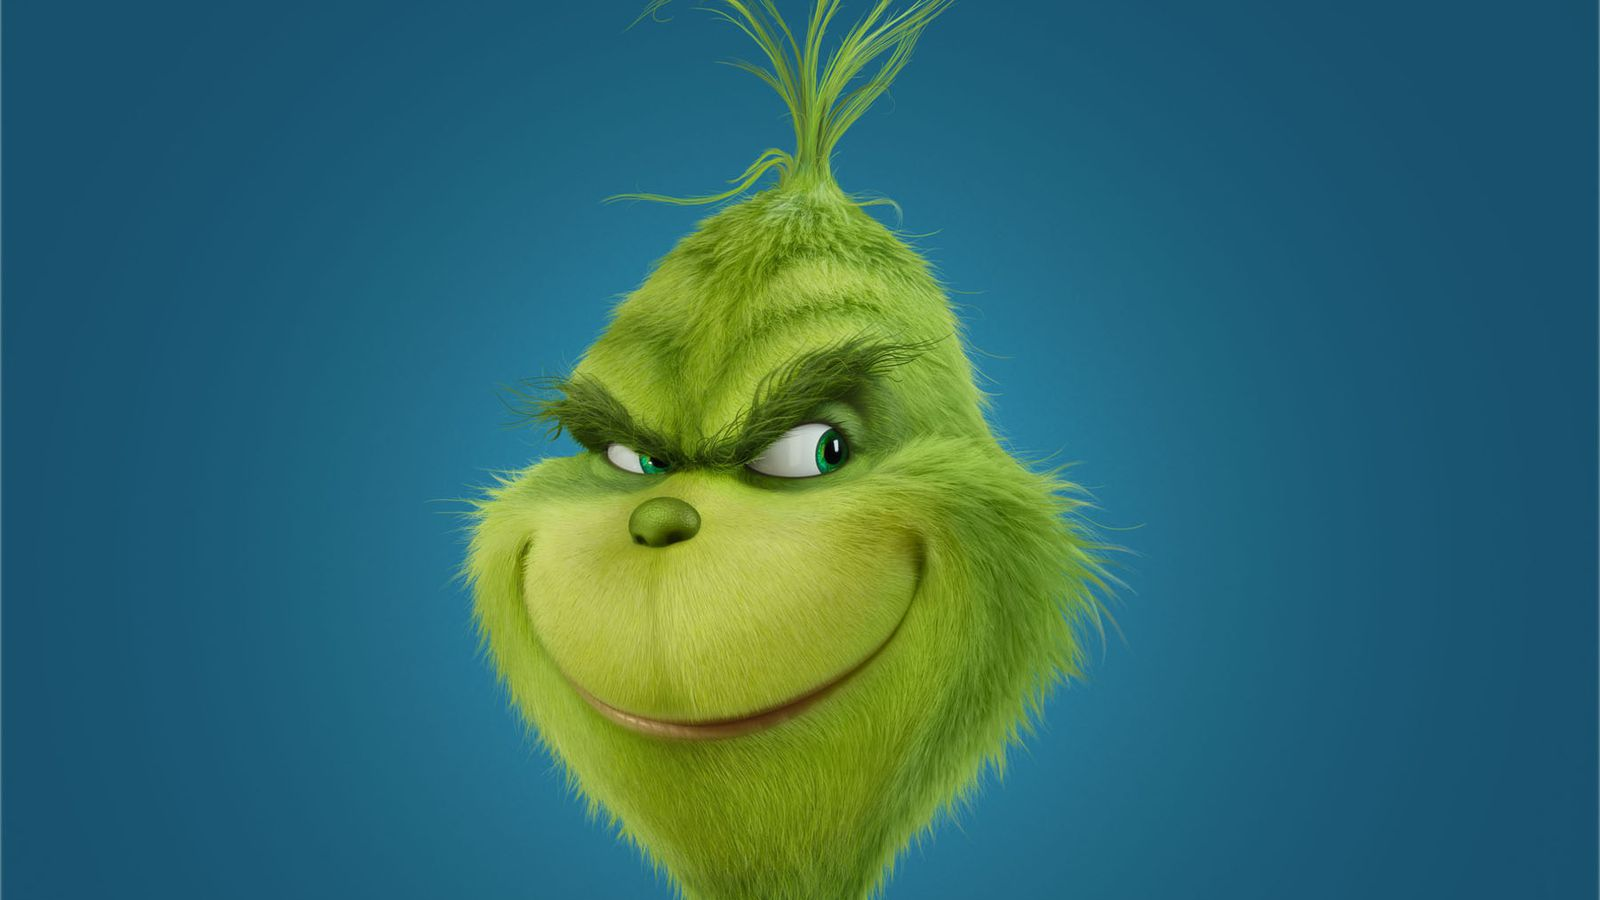 Benedict Cumberbatch Is Going To Voice The Grinch